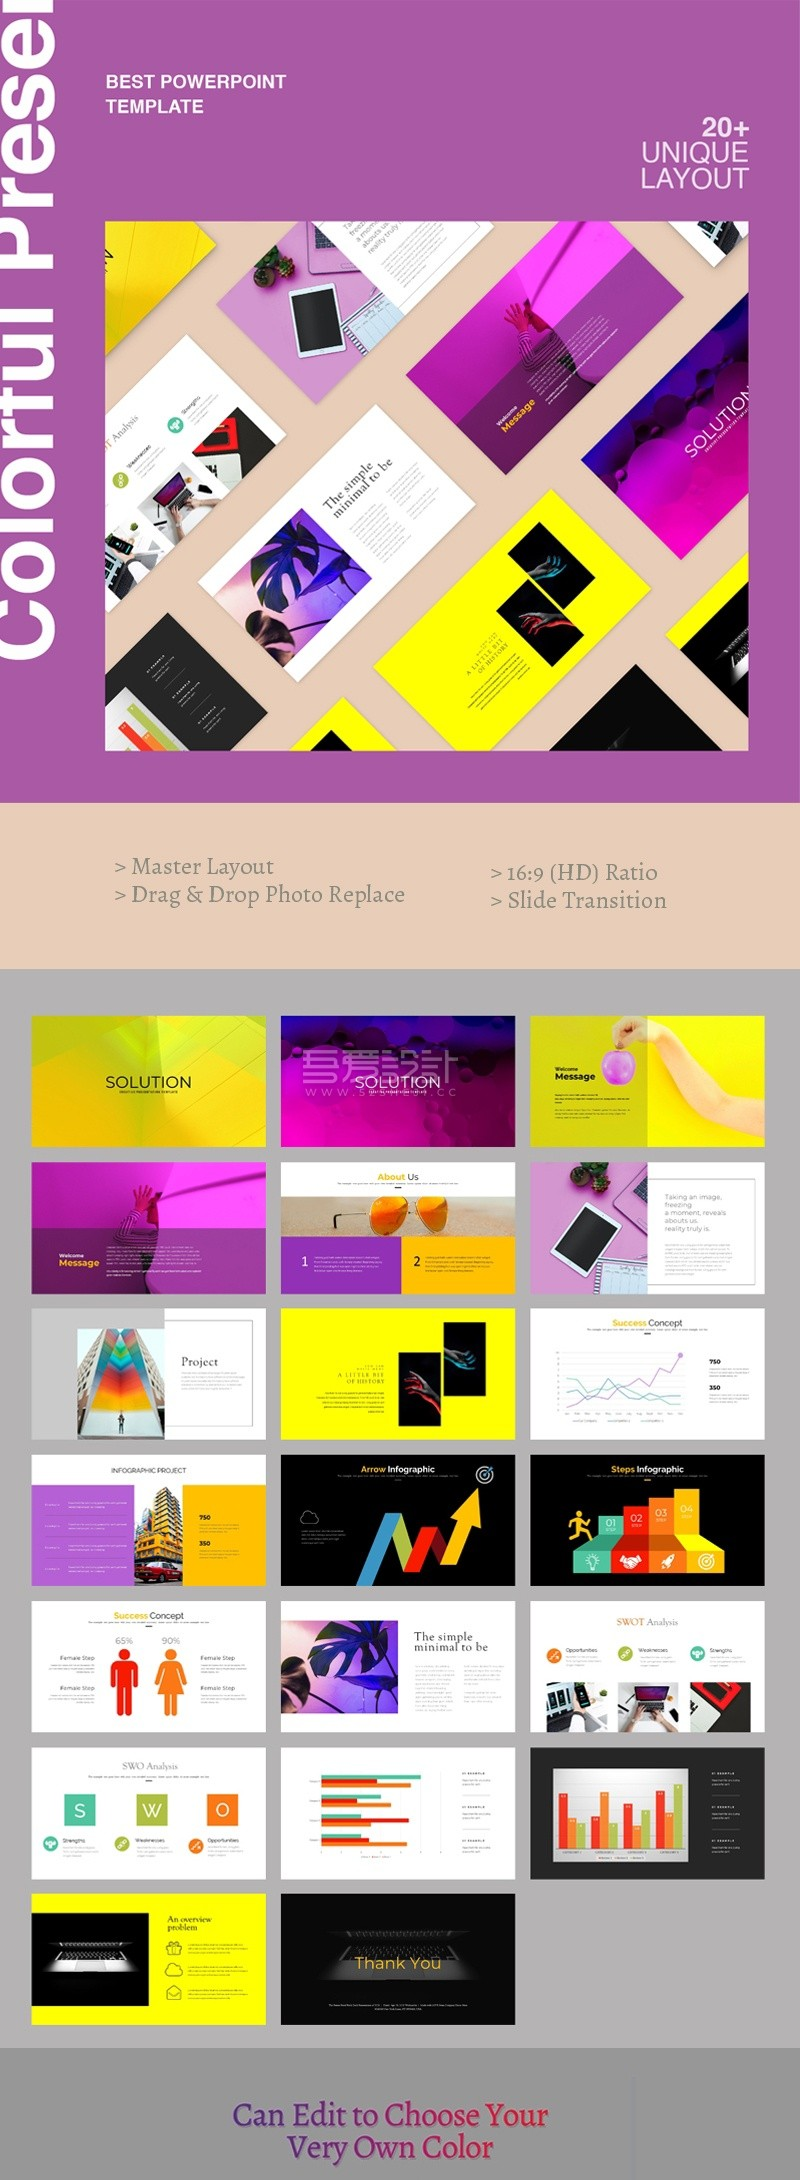 colorful-powerpoint-prsentation-template-1621-preview_a5